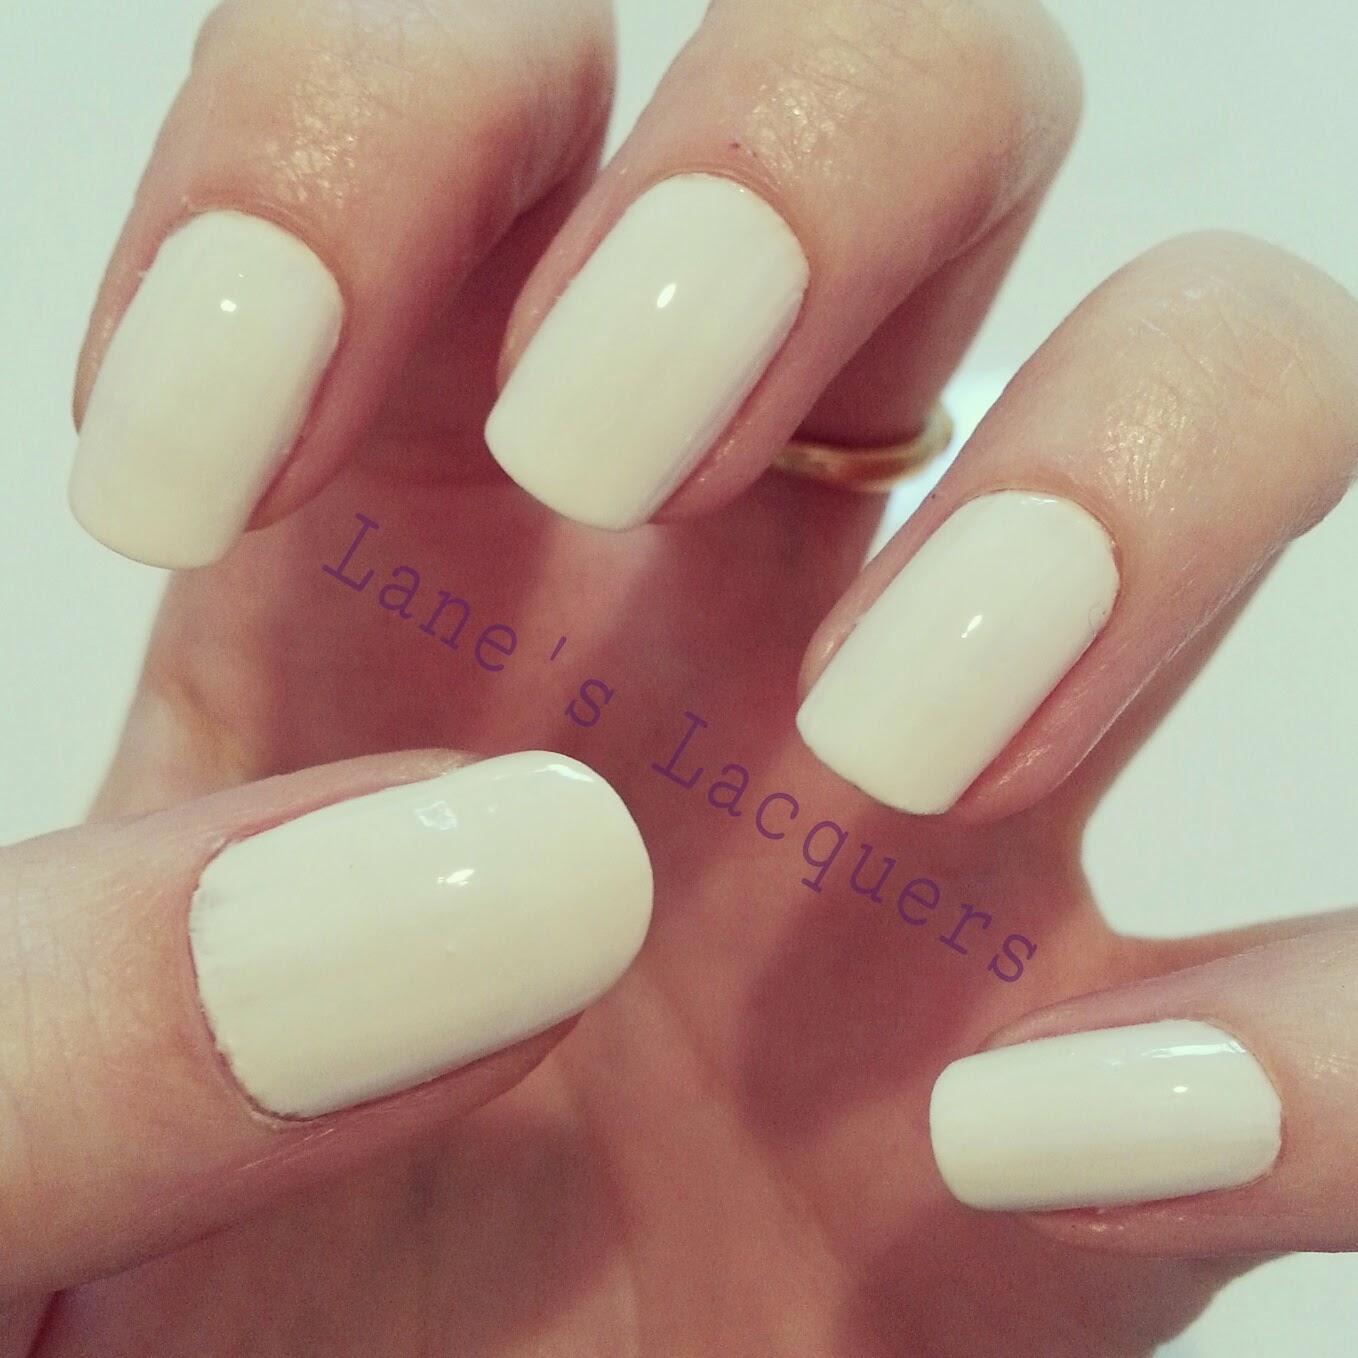 barry-m-summer-gelly-coconut-swatch-manicure